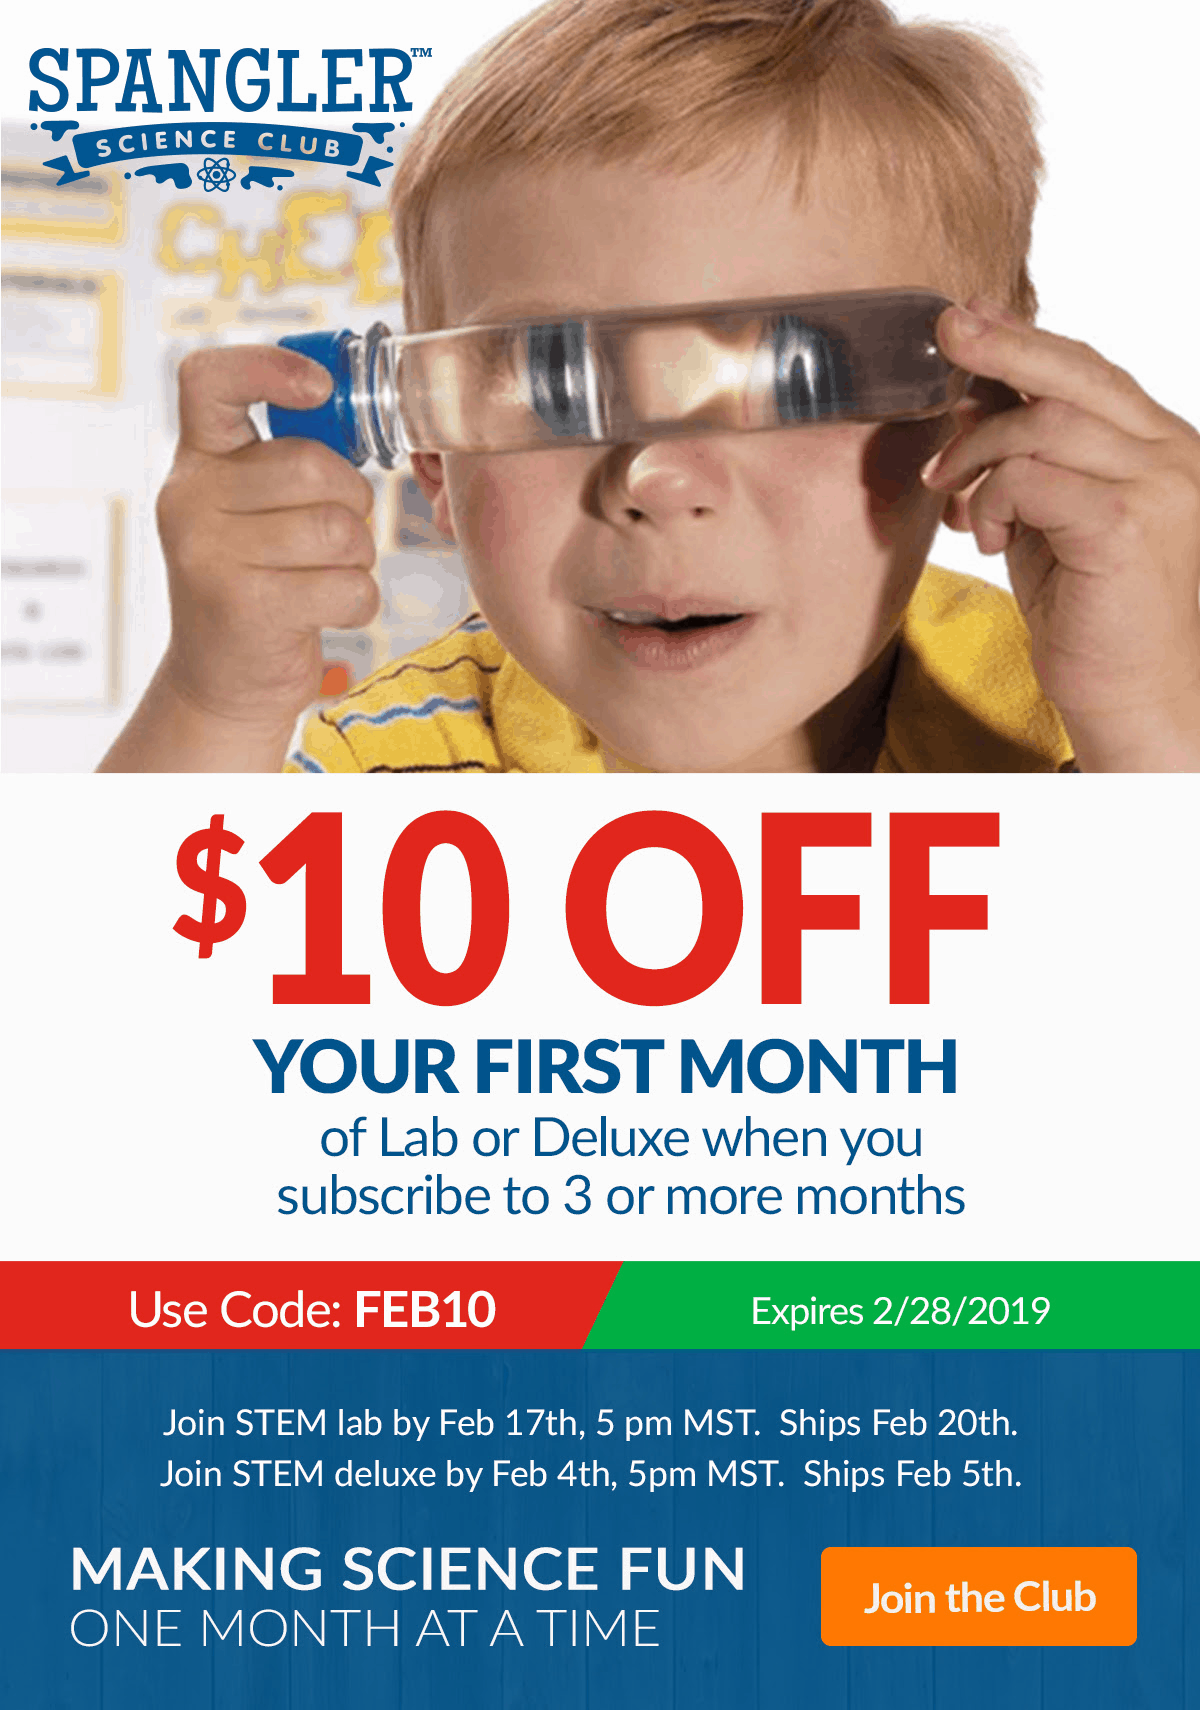 Spangler Science Club Coupon: $10 OFF On Your First Month!